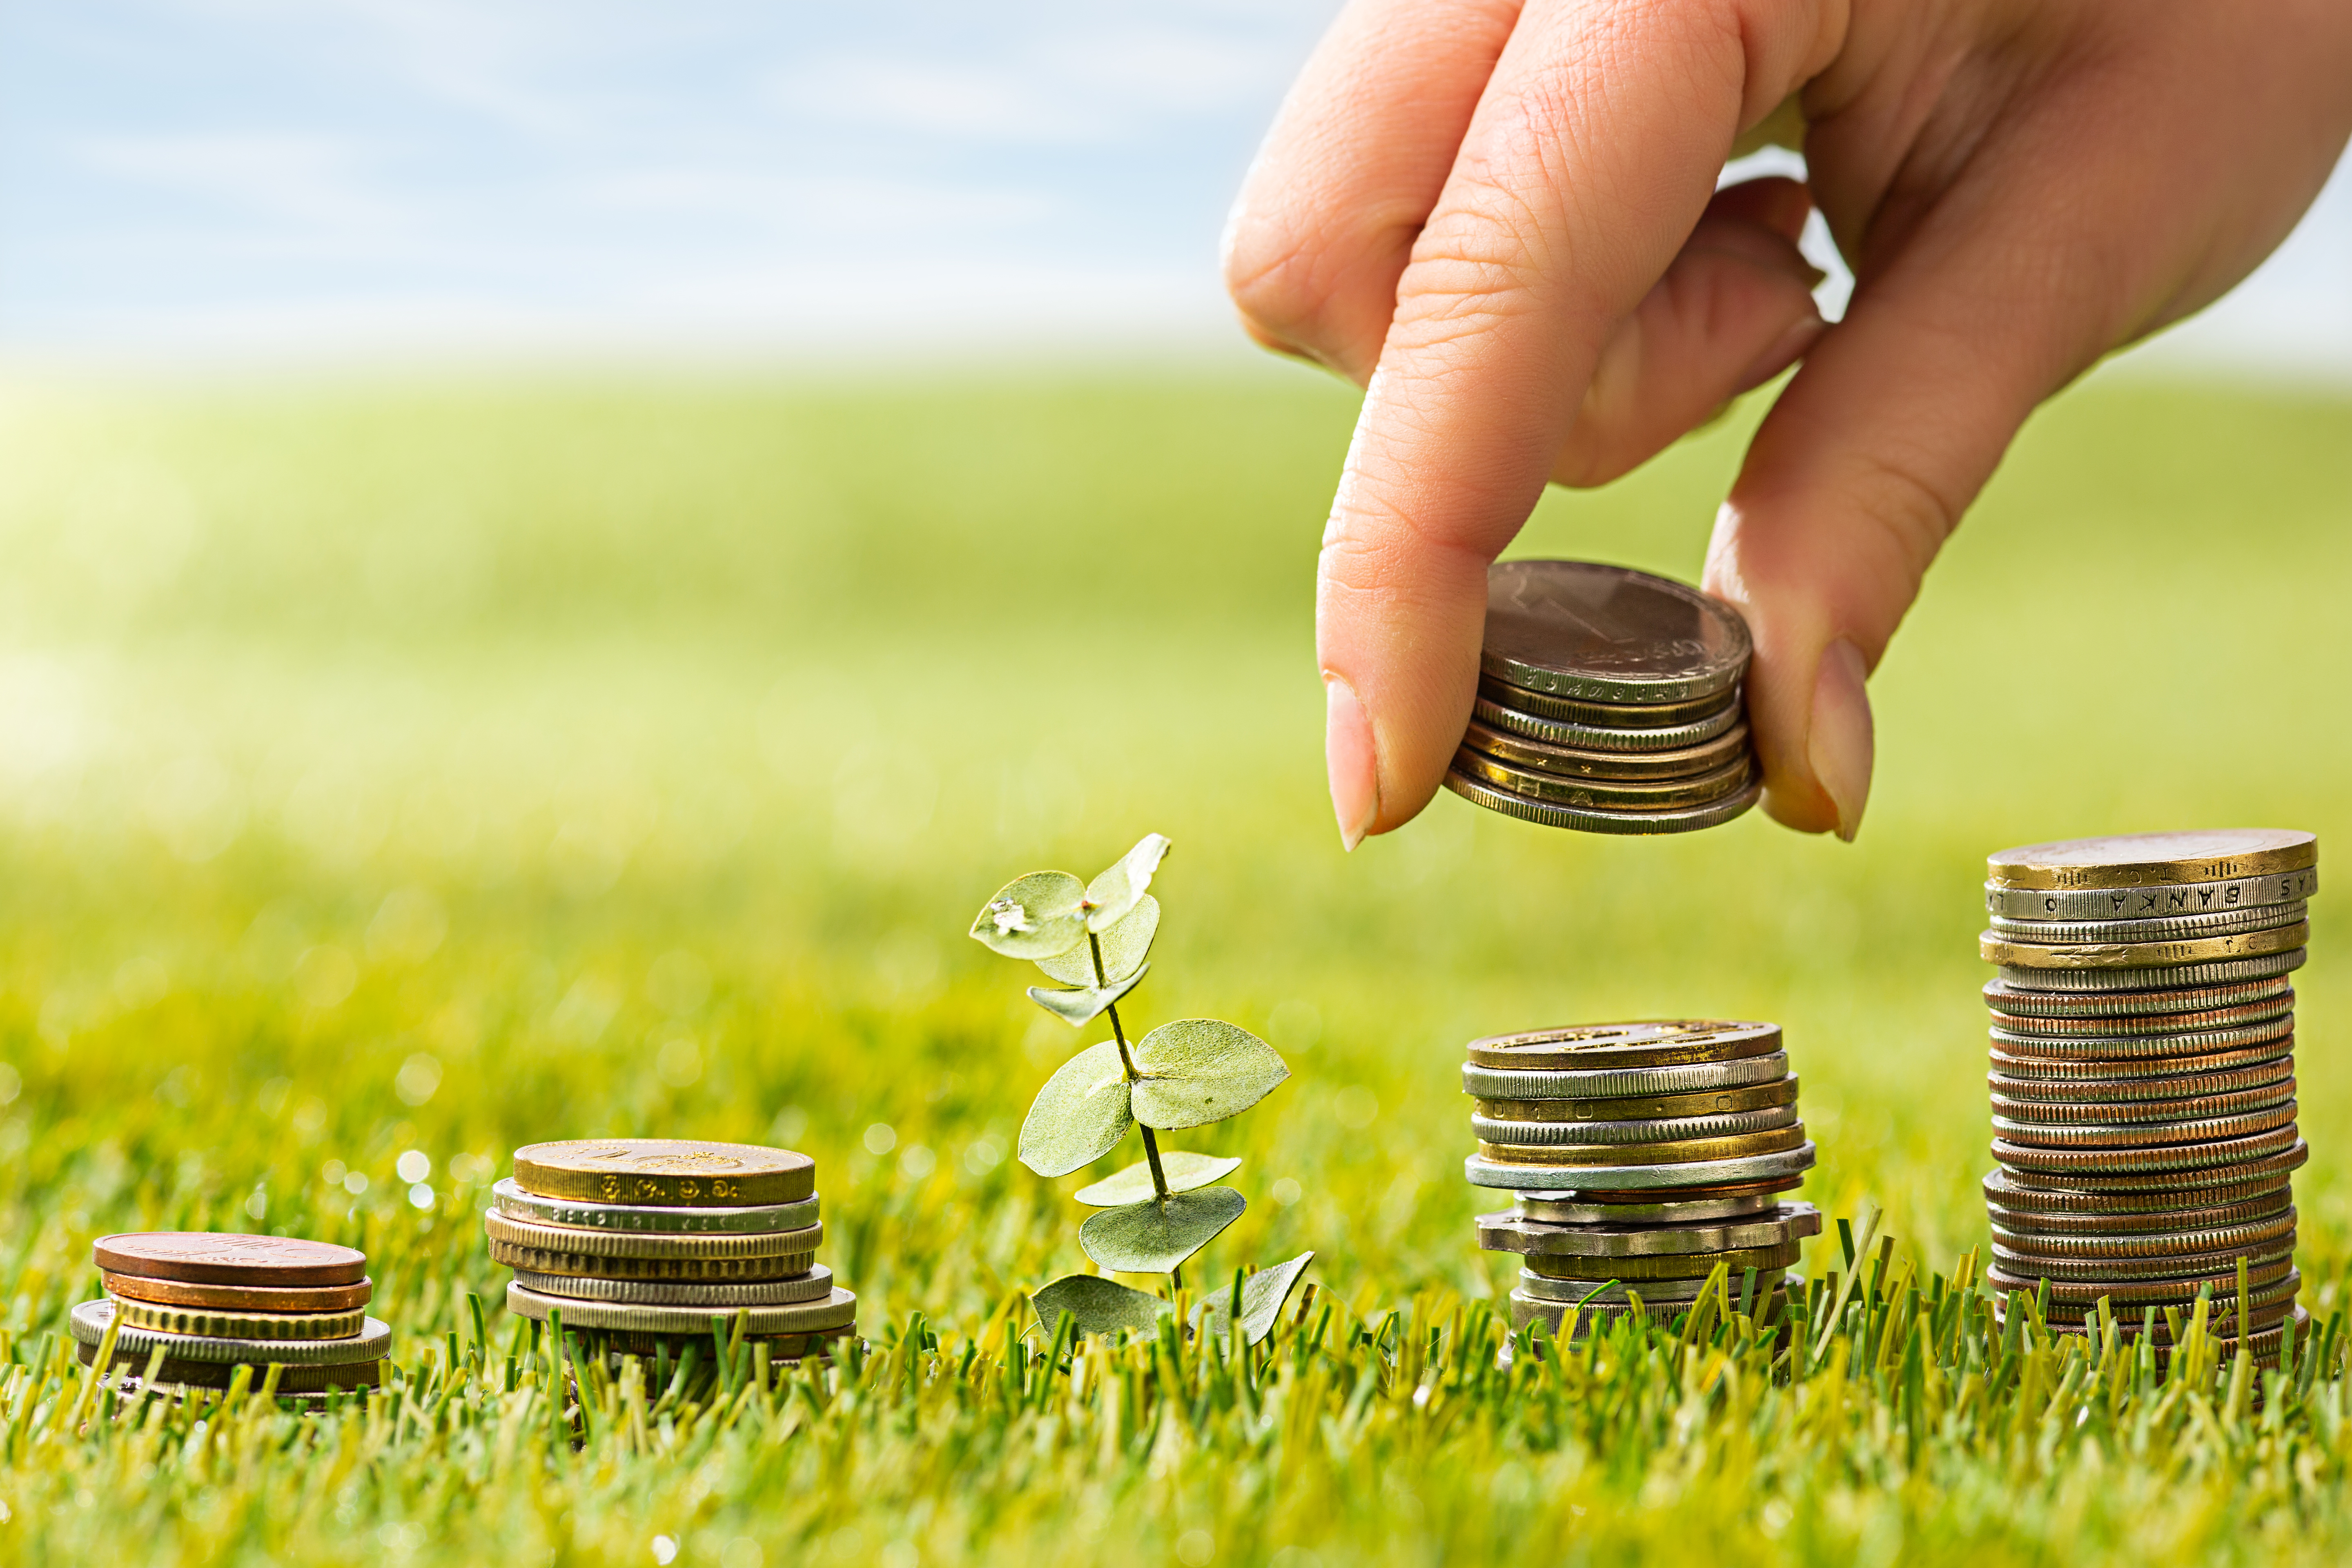 The columns of coins on green grass. Saving and investment financial concept